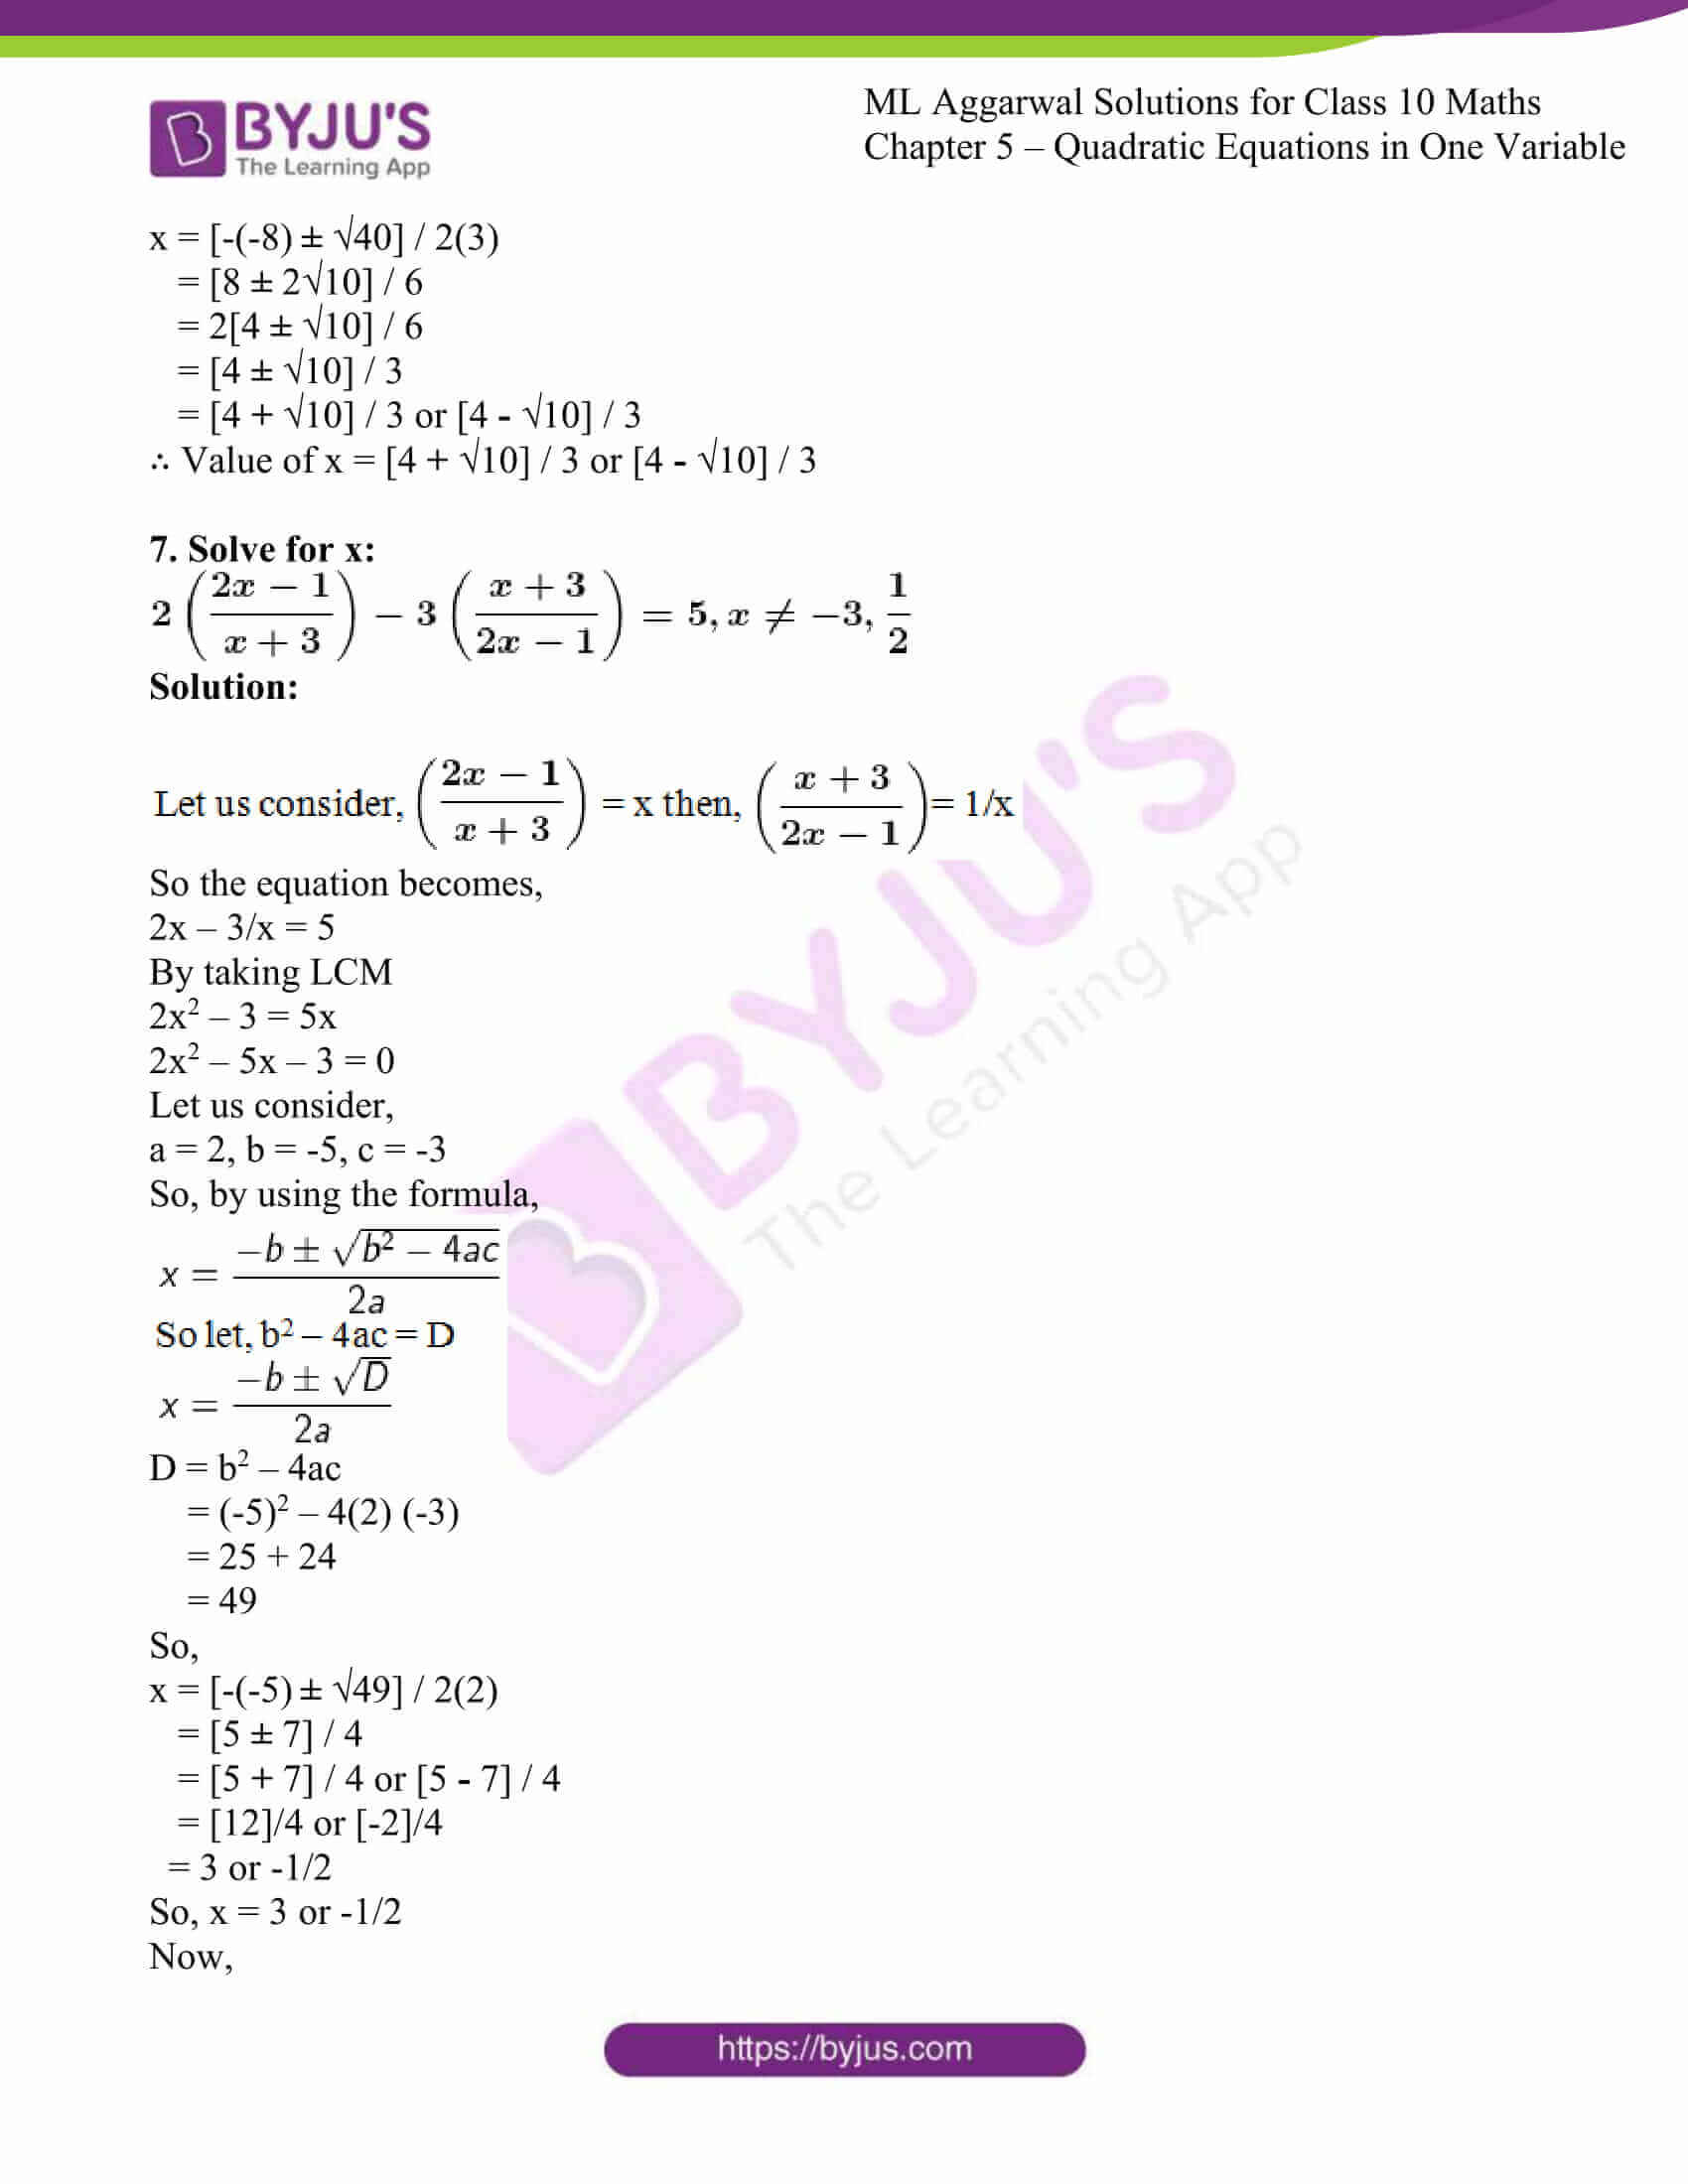 ml aggarwal solutions class 10 maths chapter 5 31